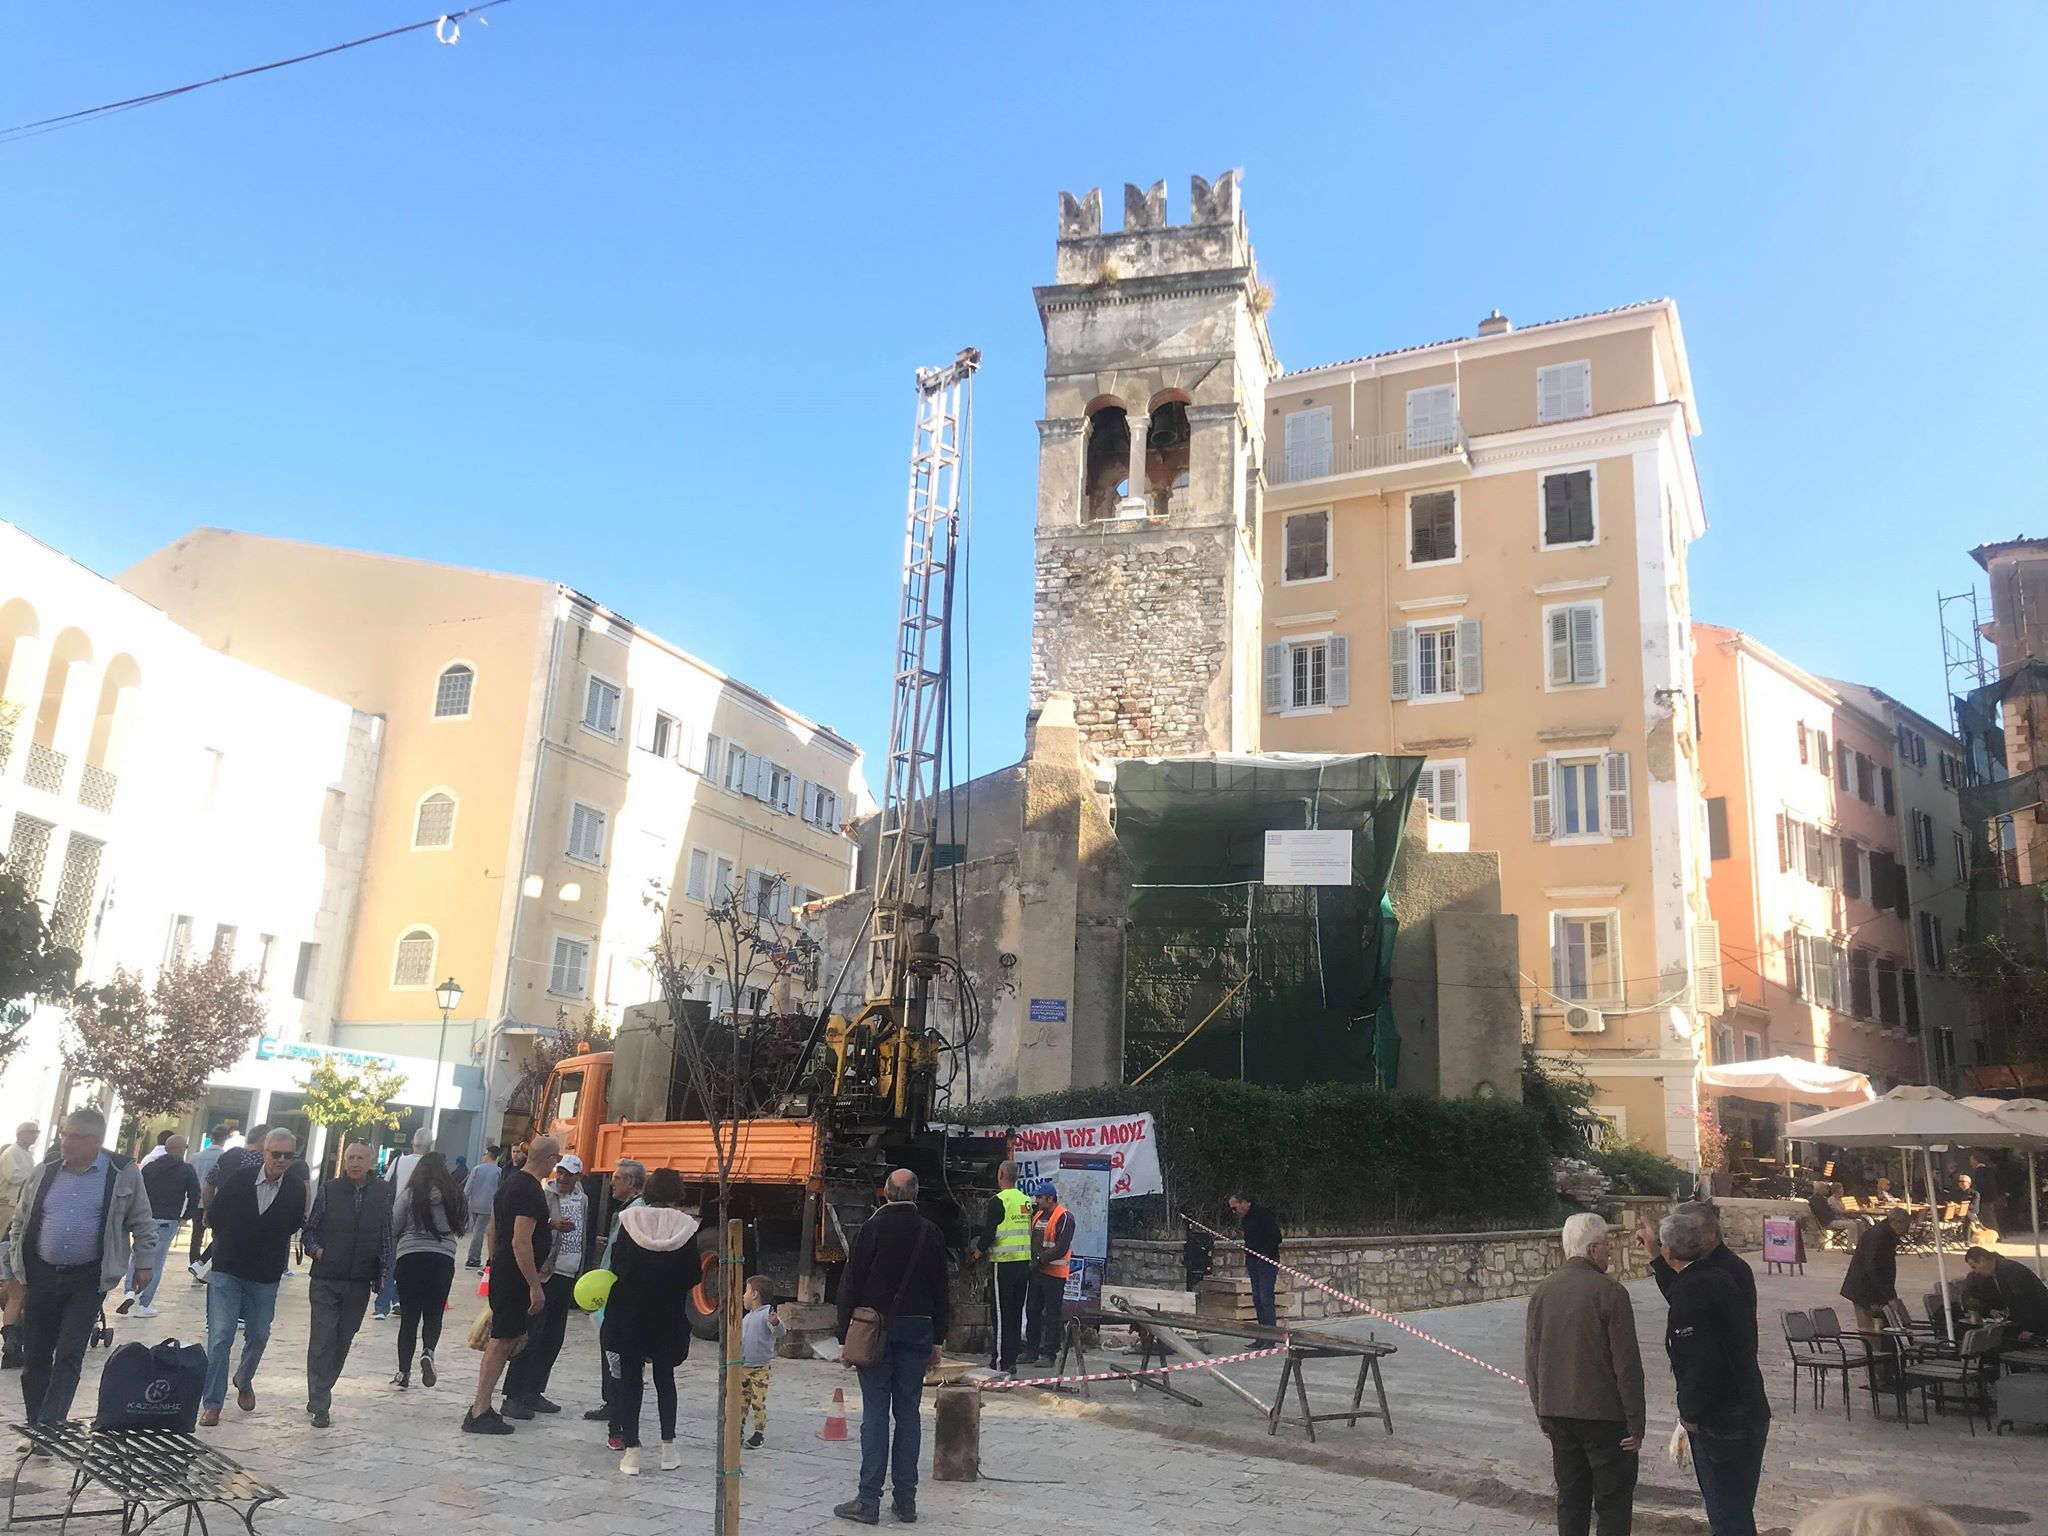 Annunciata and Asani renovations: Drilling work has begun for the geotechnical surveys